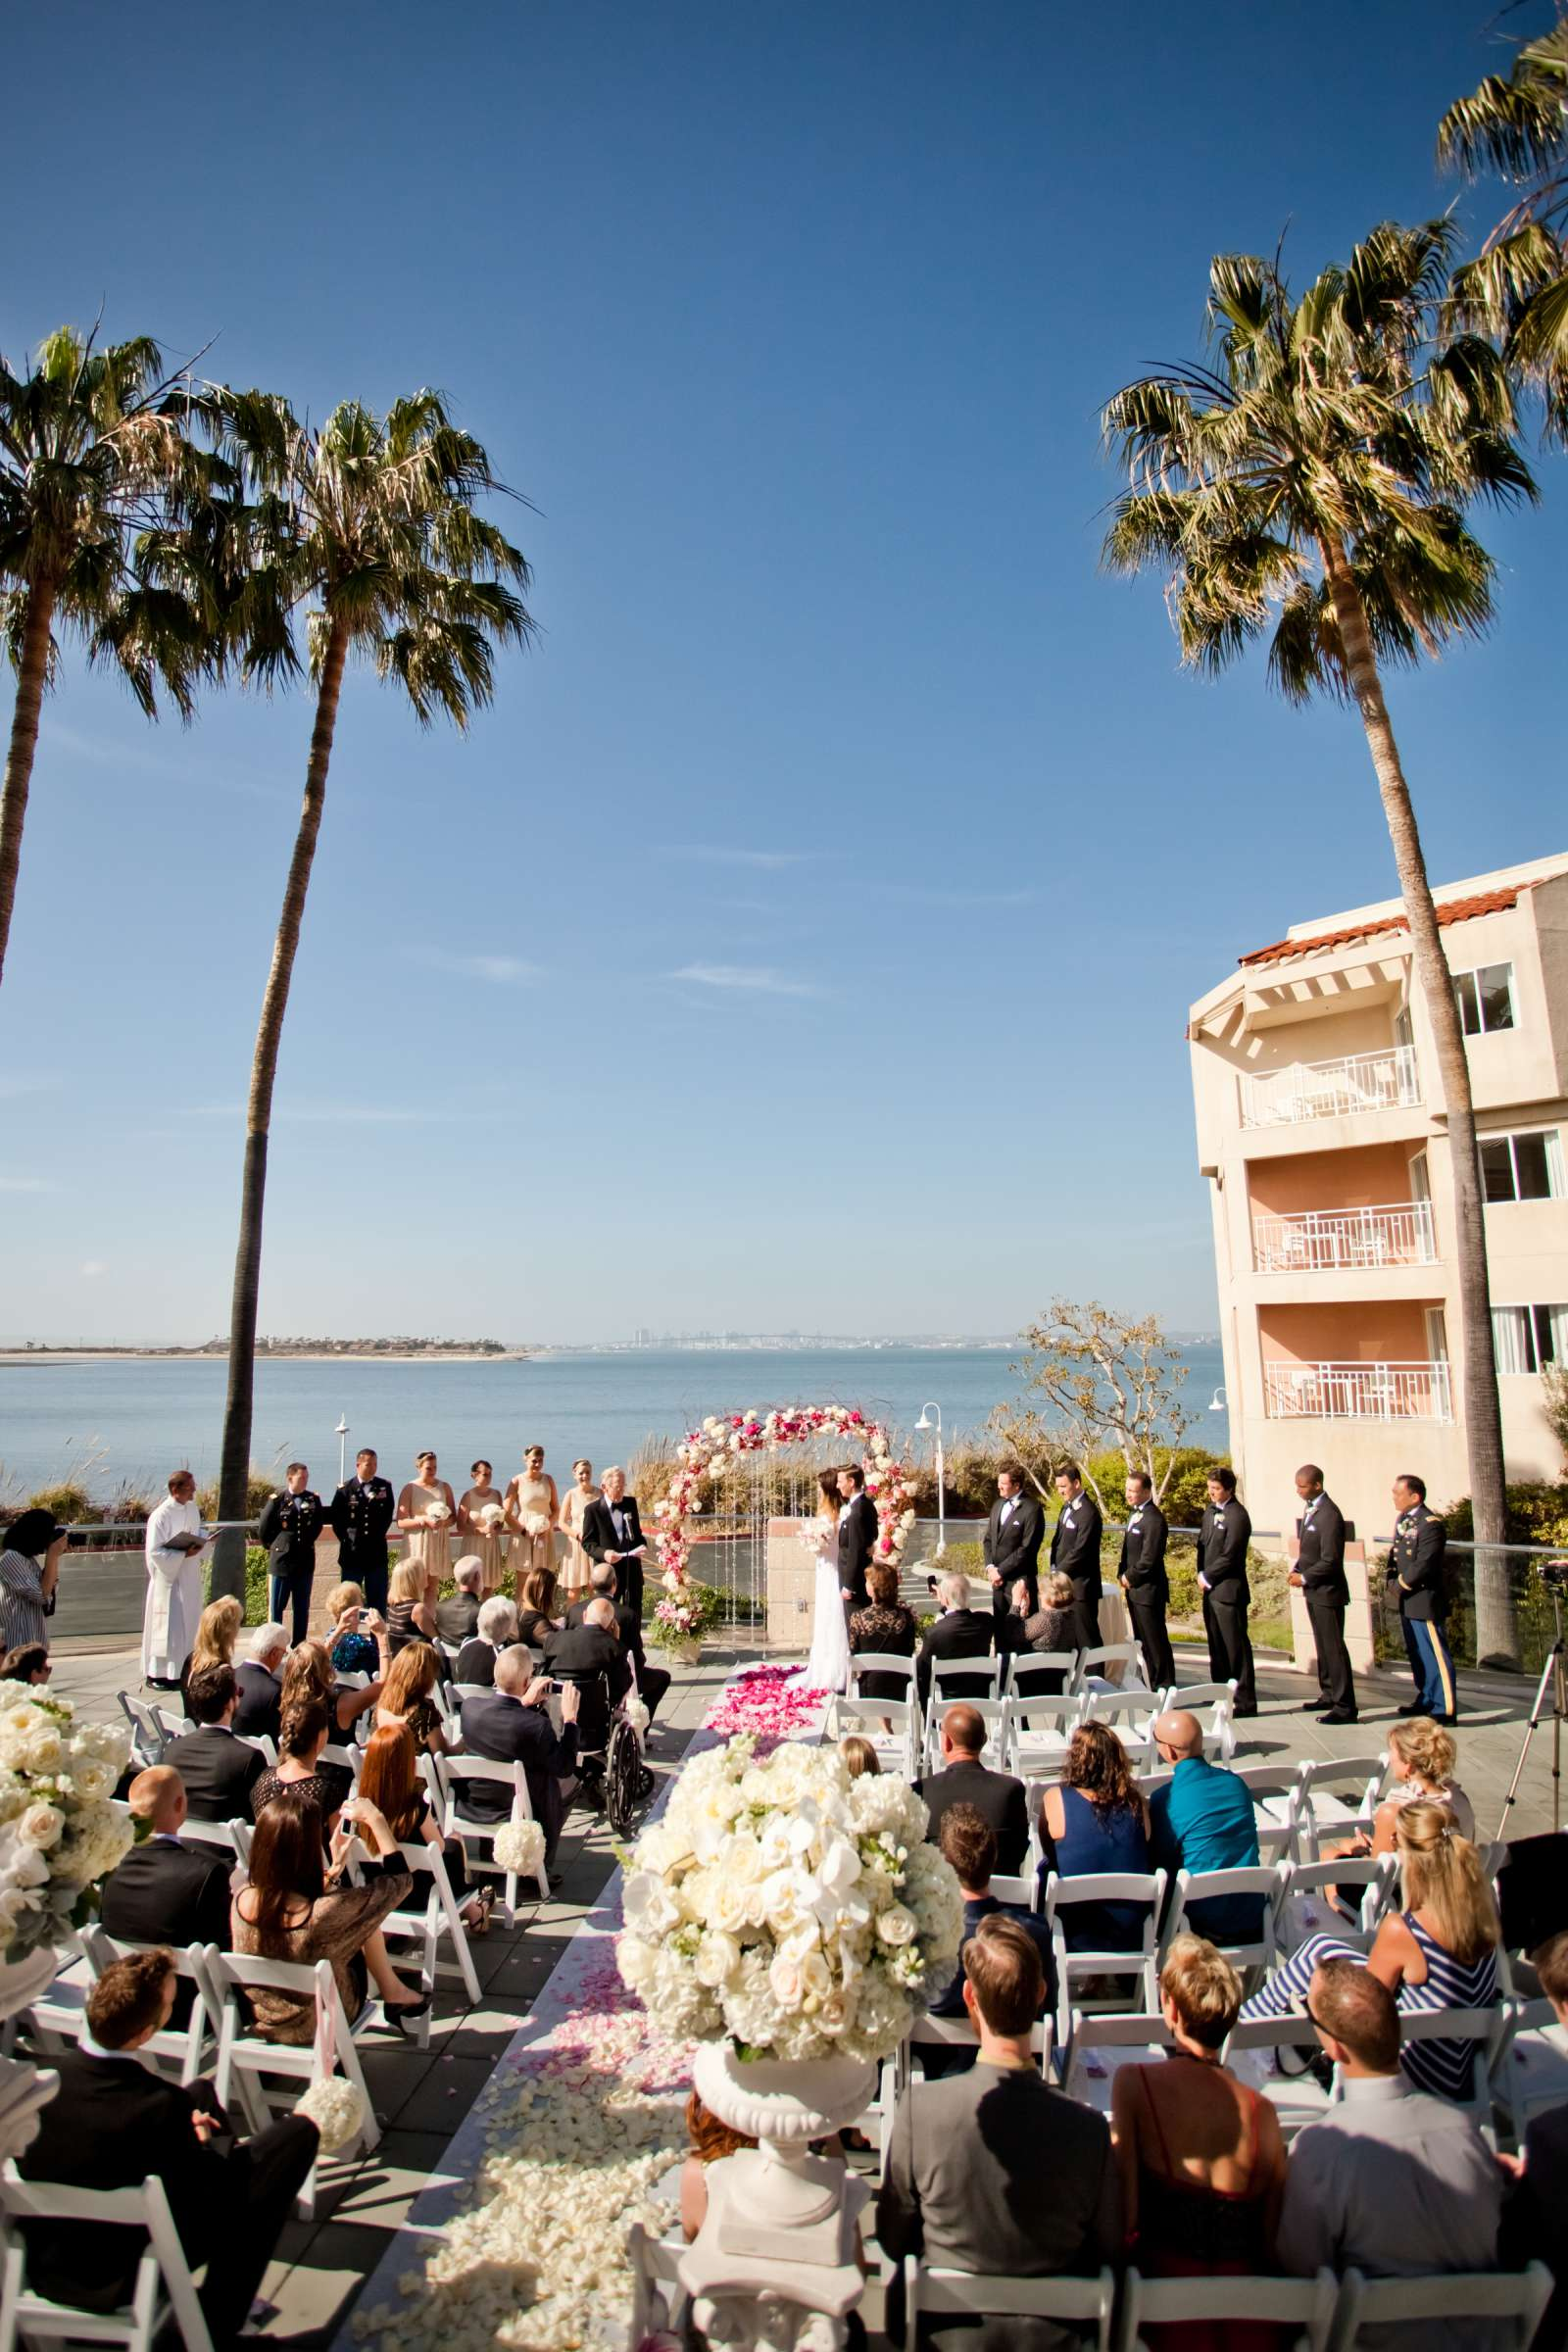 Loews Coronado Bay Resort Wedding coordinated by Kelly Lamb Events, Charlie and David Wedding Photo #9 by True Photography